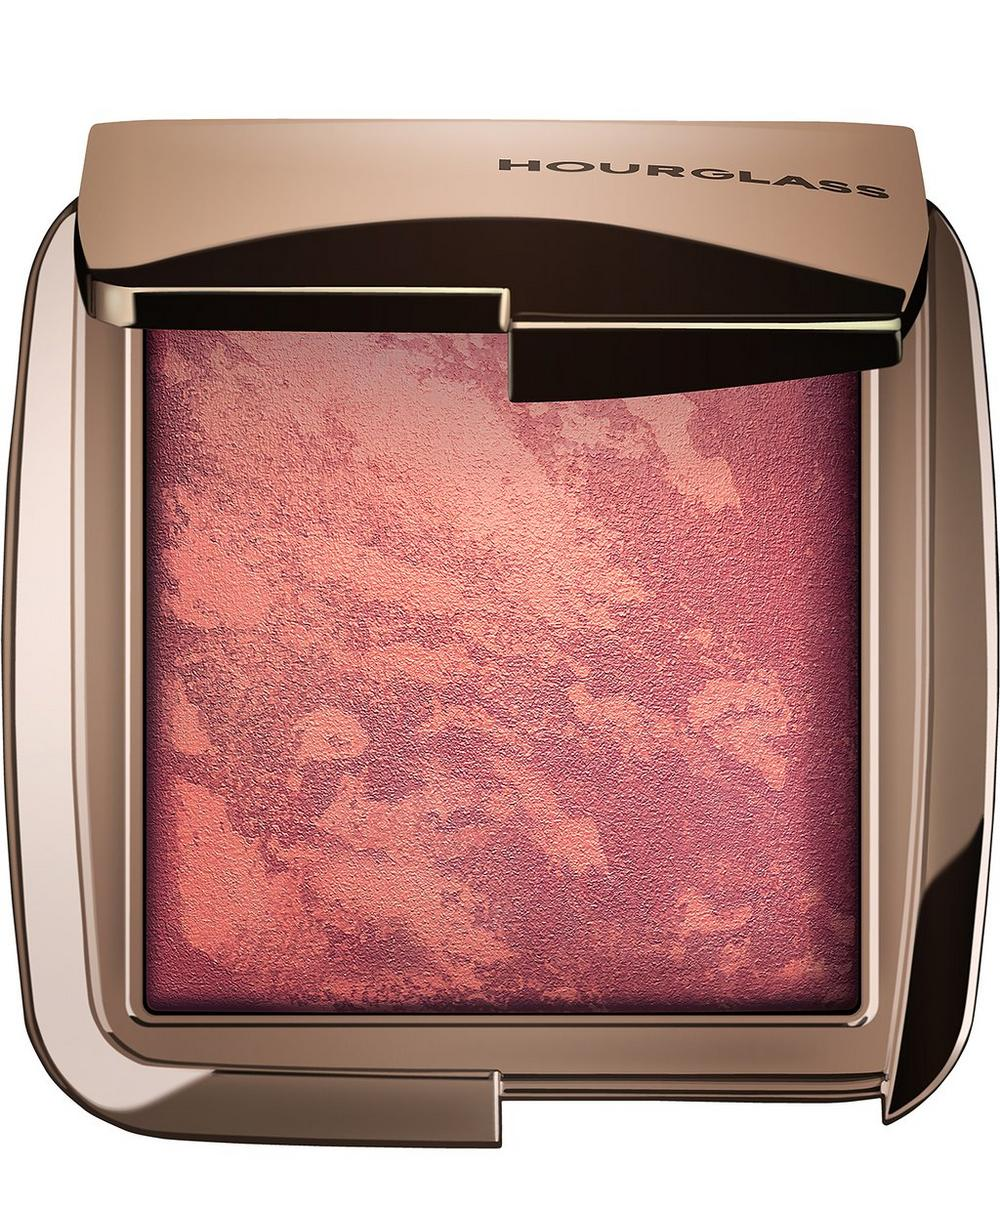 Hourglass - Ambient Lighting Blush Lunar New Year Edition